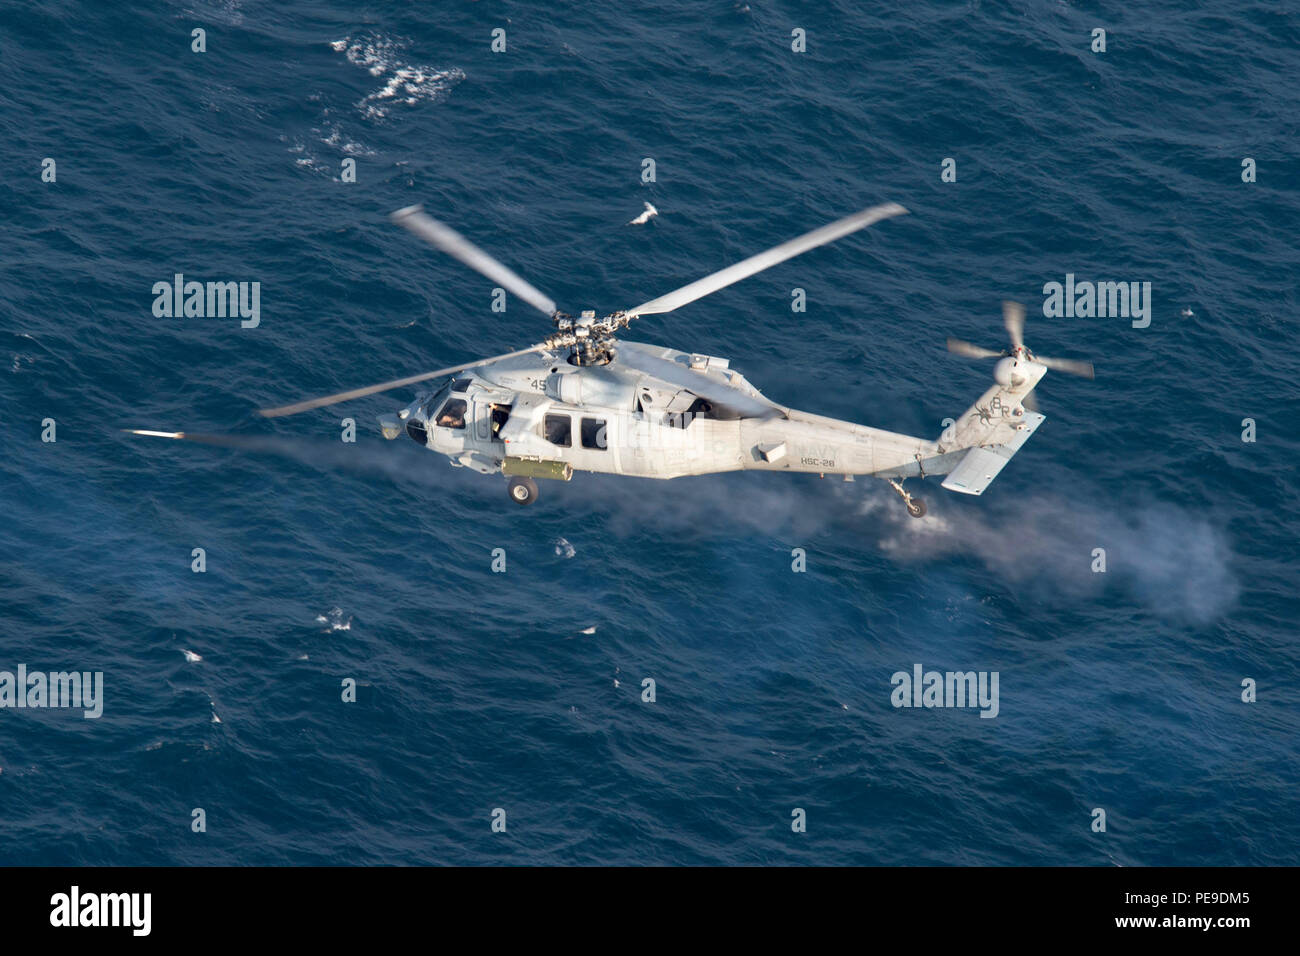 "151114-N-AX638-585 GULF OF ADEN (Nov. 14, 2015) An MH-60S Seahawk, attached to Helicopter Sea Combat Squadron (HSC) 28, the ""Dragon Whales,"" fires an inert 2.75 inch 'Mighty Mouse' rocket during a rocket exercise. HSC-28 is embarked aboard the amphibious assault ship USS Kearsarge (LHD 3) as part the Kearsarge Amphibious Ready Group (ARG), and with the embarked 26th Marine Expeditionary Unit (MEU), is deployed in support of maritime security operations and theater security cooperation efforts in the U.S. 5th Fleet area of operations. (U.S. Navy photo by Mass Communication Specialist Seaman Tyl - Stock Image"